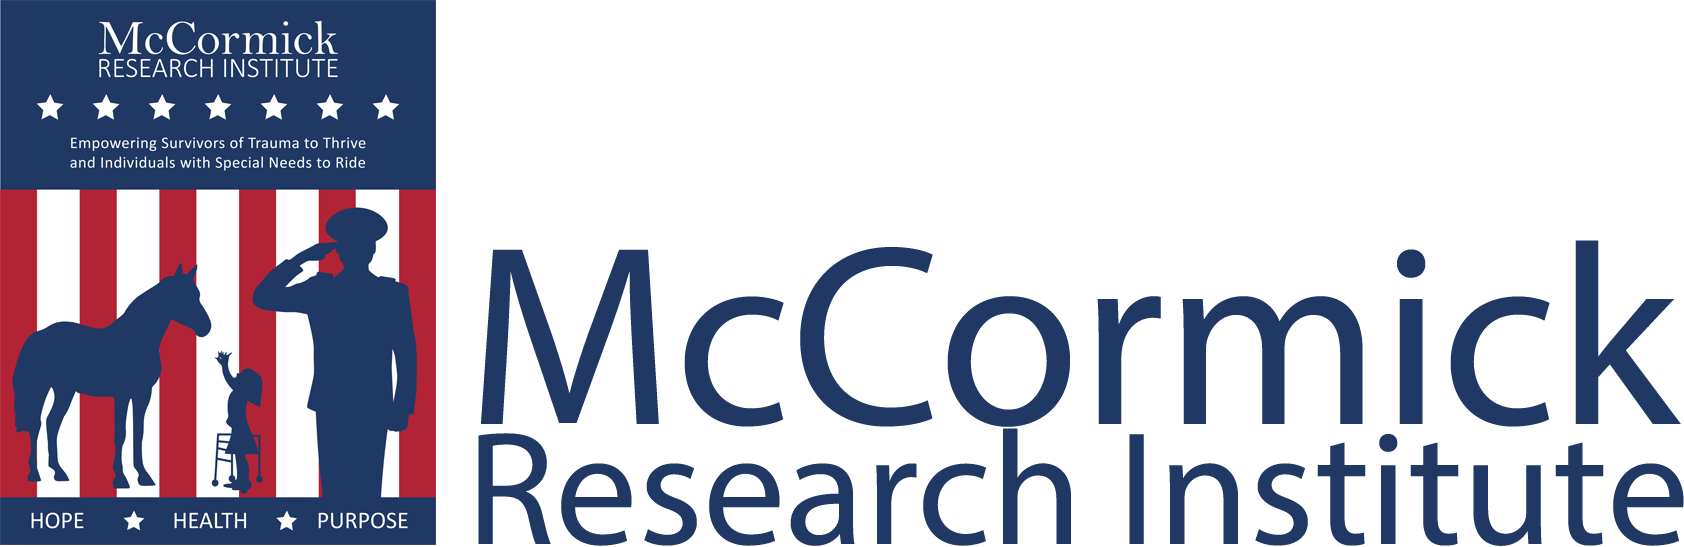 McCormick Research Institute